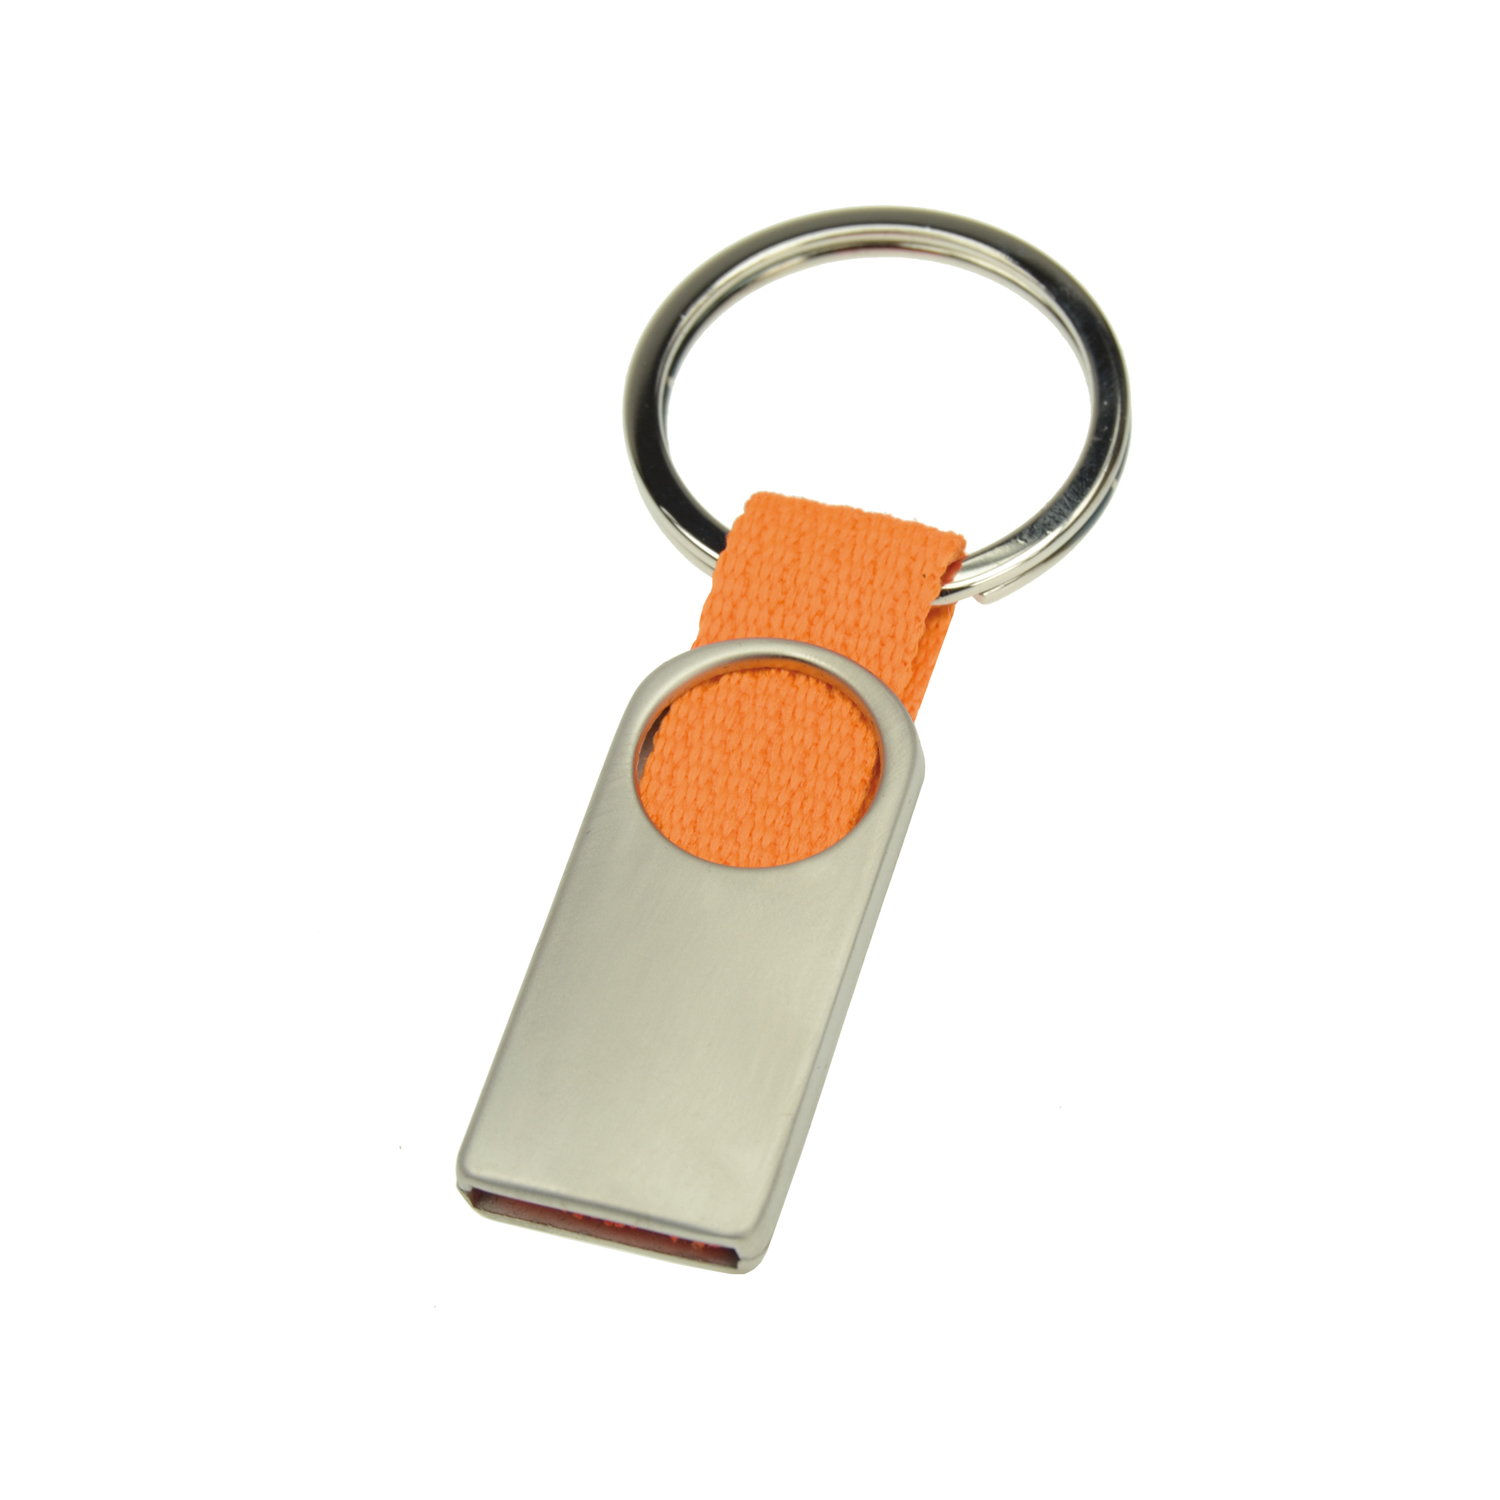 Keychain 007 (Metal keyring) - hmi46007-11 (Orange)